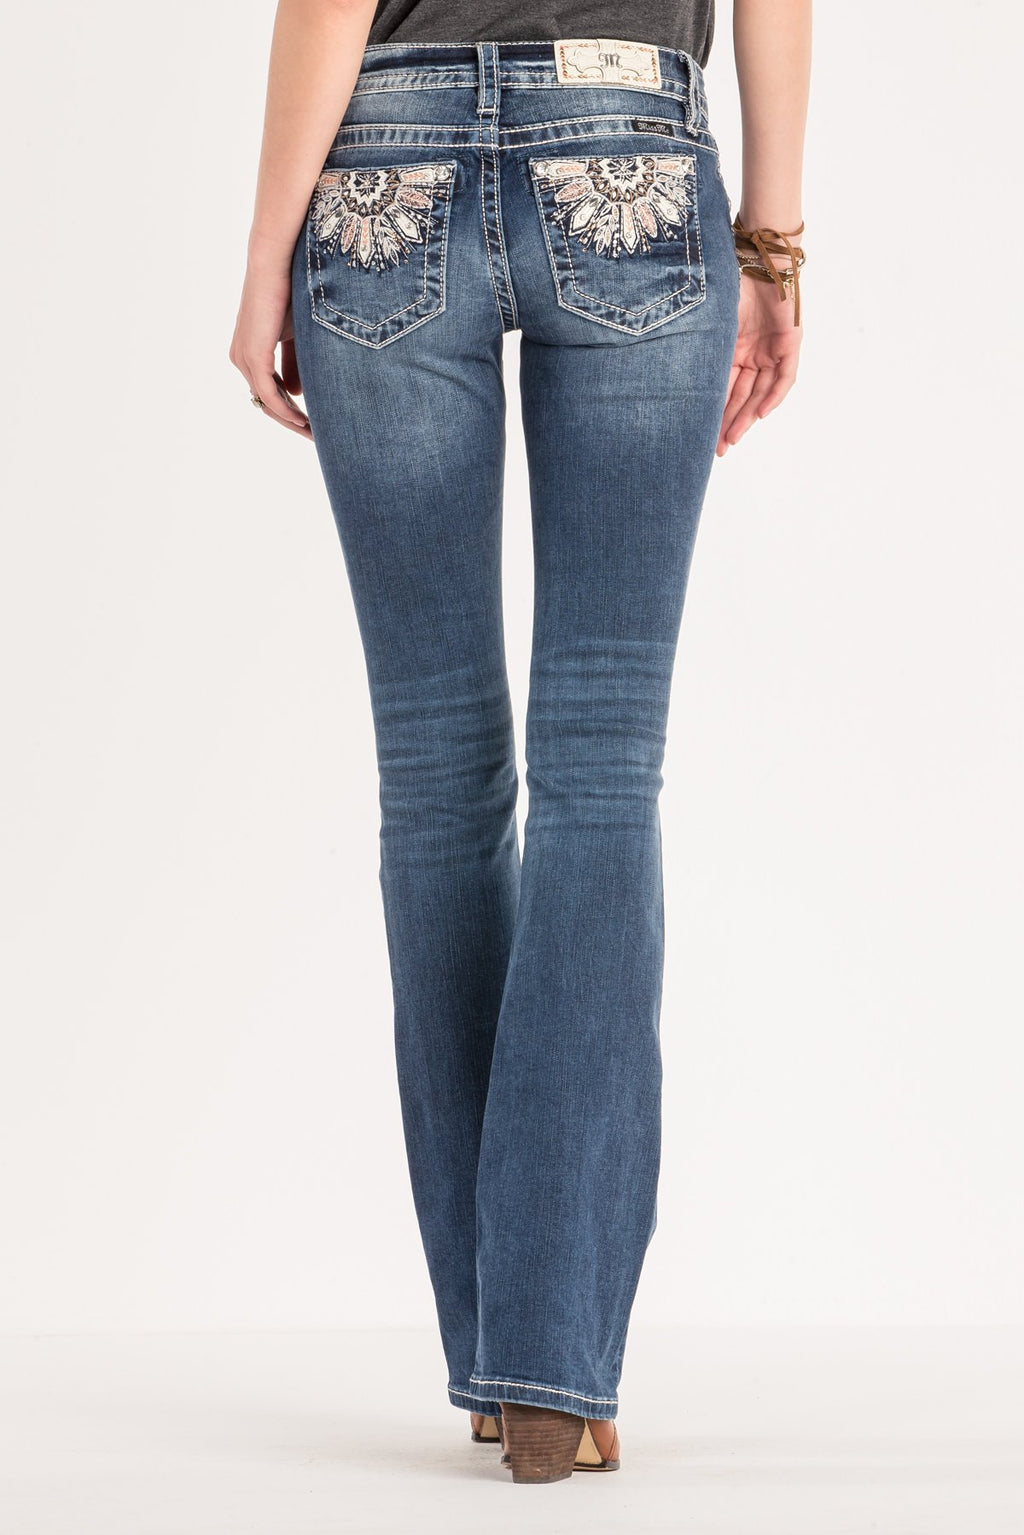 8d02d5ae08f FEATHER EMBROIDERED MID-RISE BOOTCUT JEANS - back